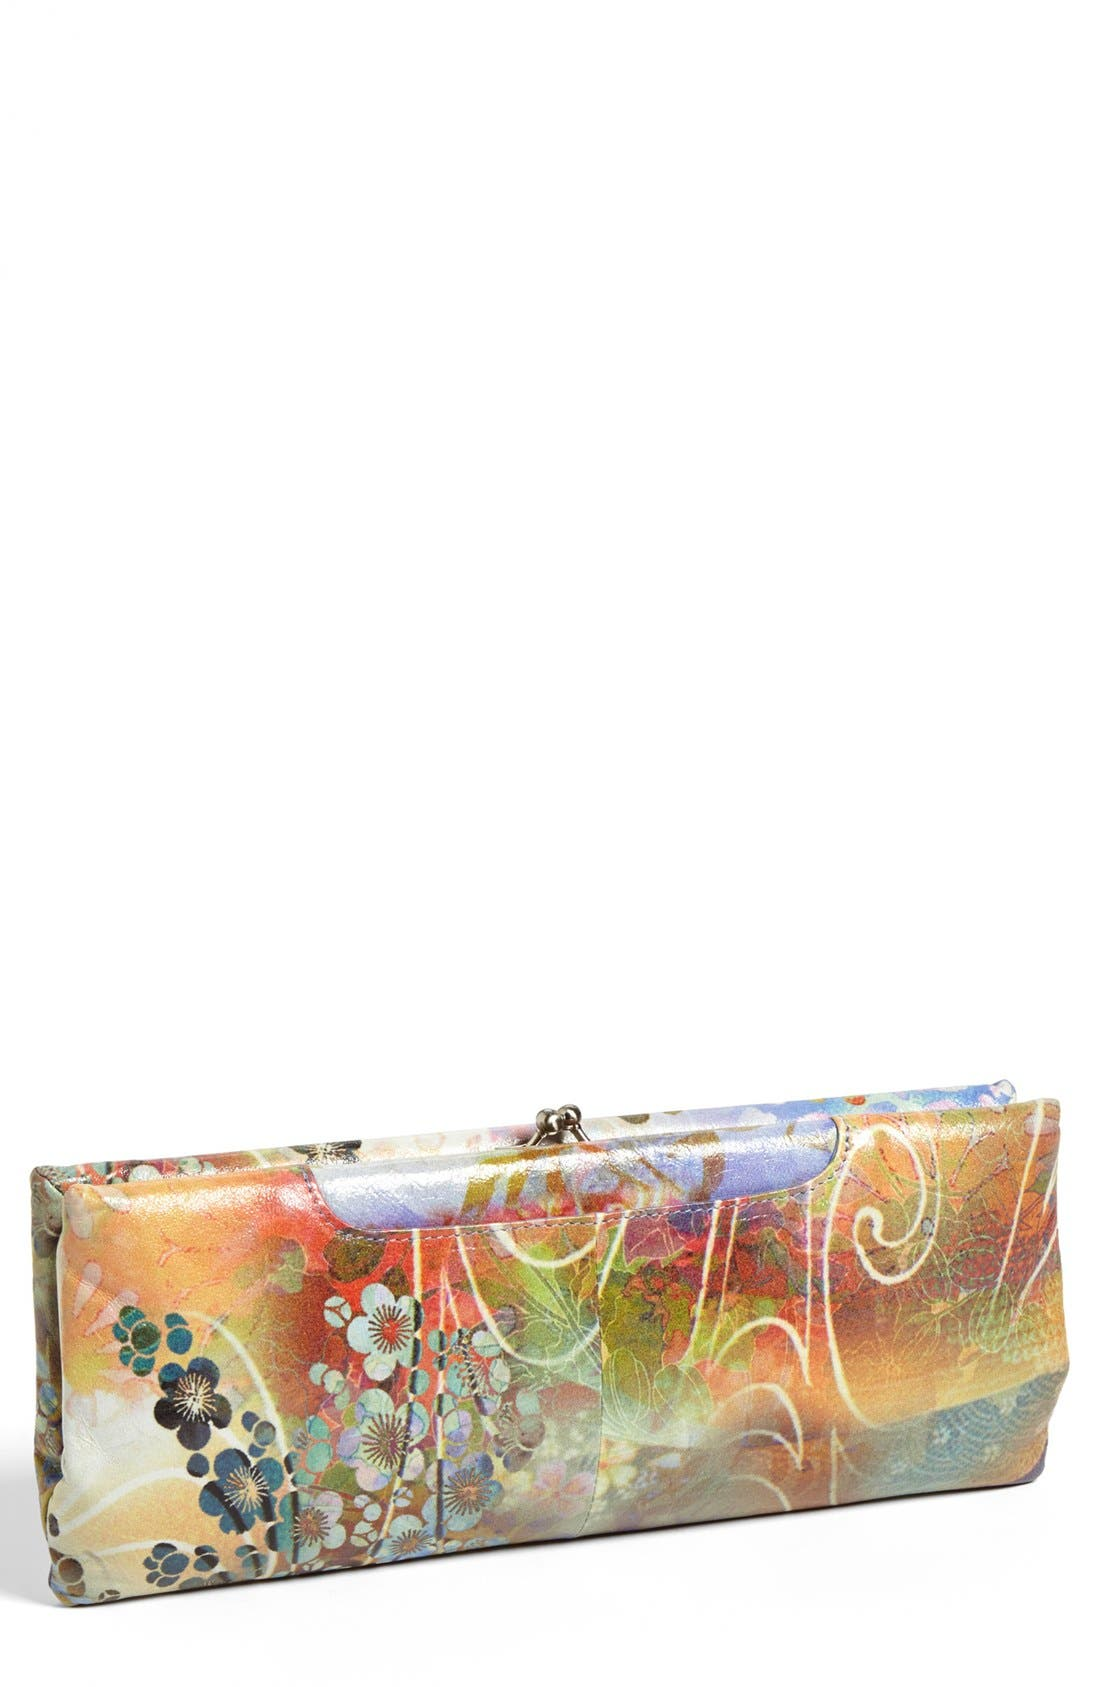 Alternate Image 1 Selected - Hobo 'Adelyn' Kiss Lock Clutch Wallet